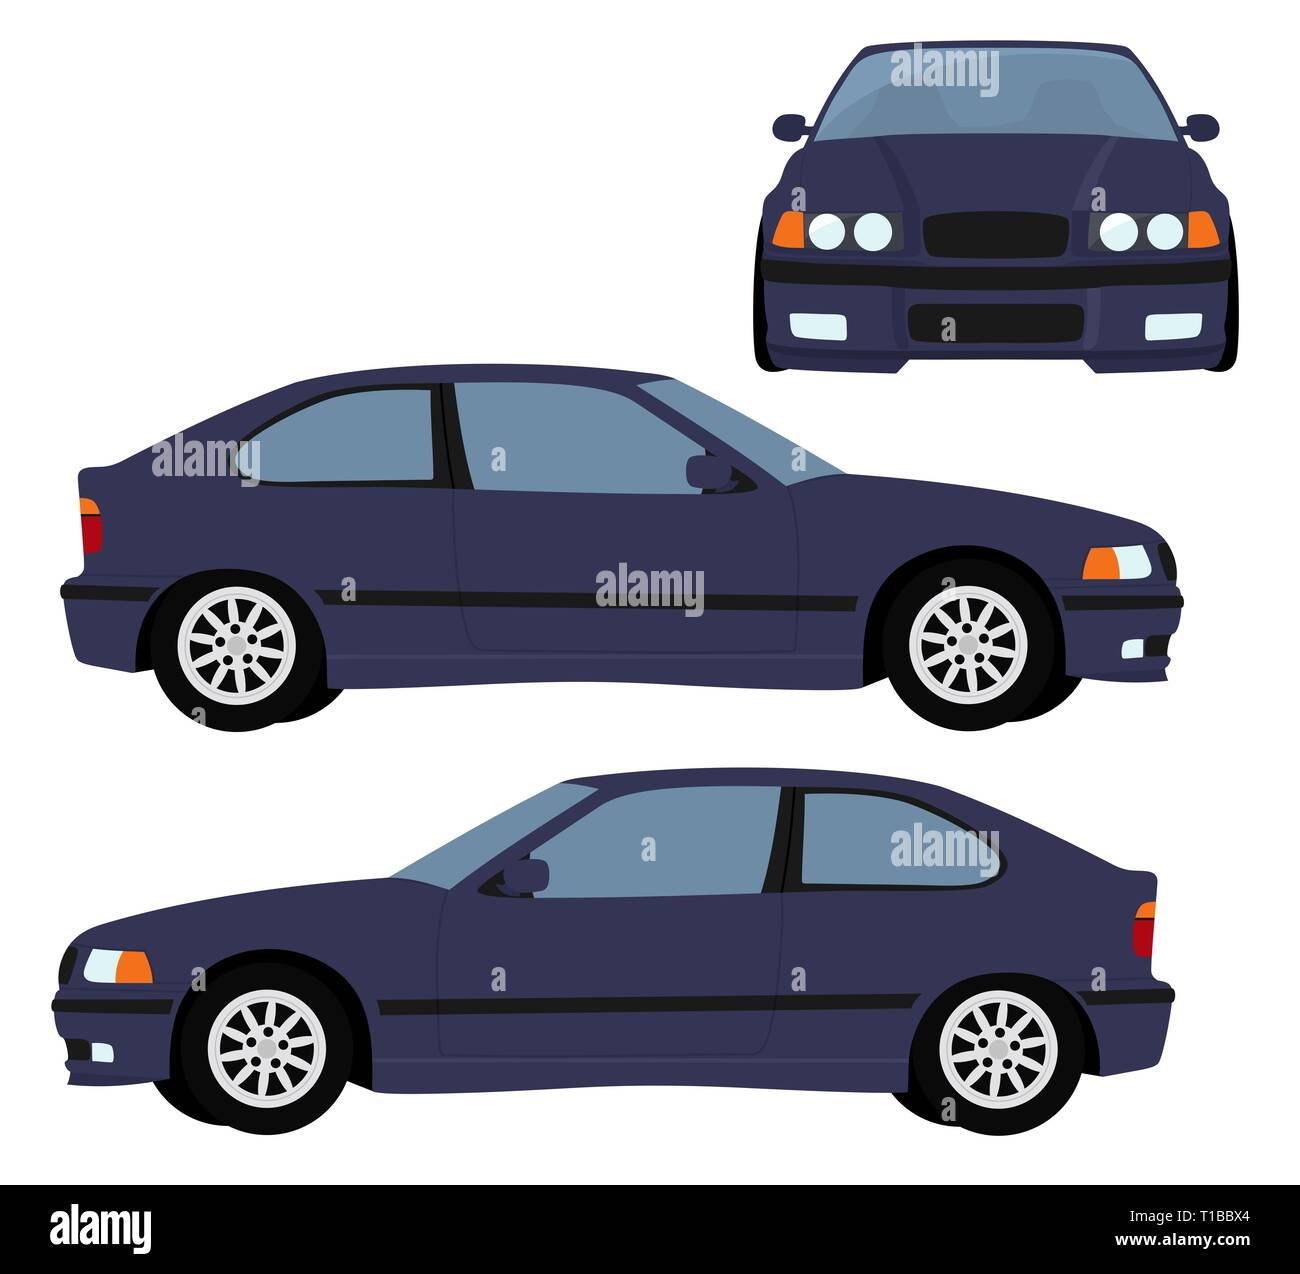 Car Raster template on white background. hatchback car isolated. Vehicle branding mockup. Side, front view. Raster illustration on white background - Stock Image